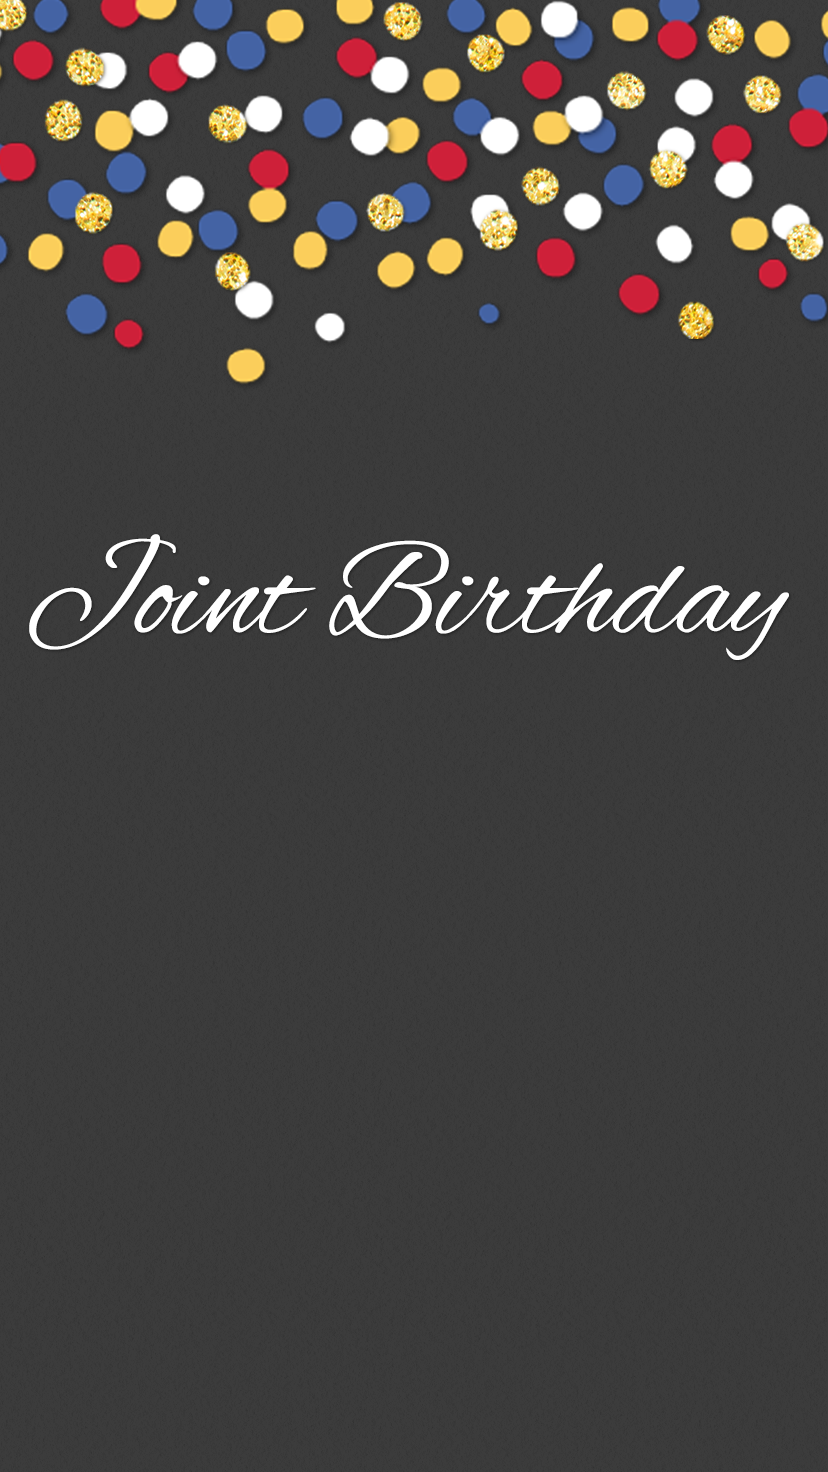 Celebrate A Joint Birthday With This Free Paperless Evite Invitation